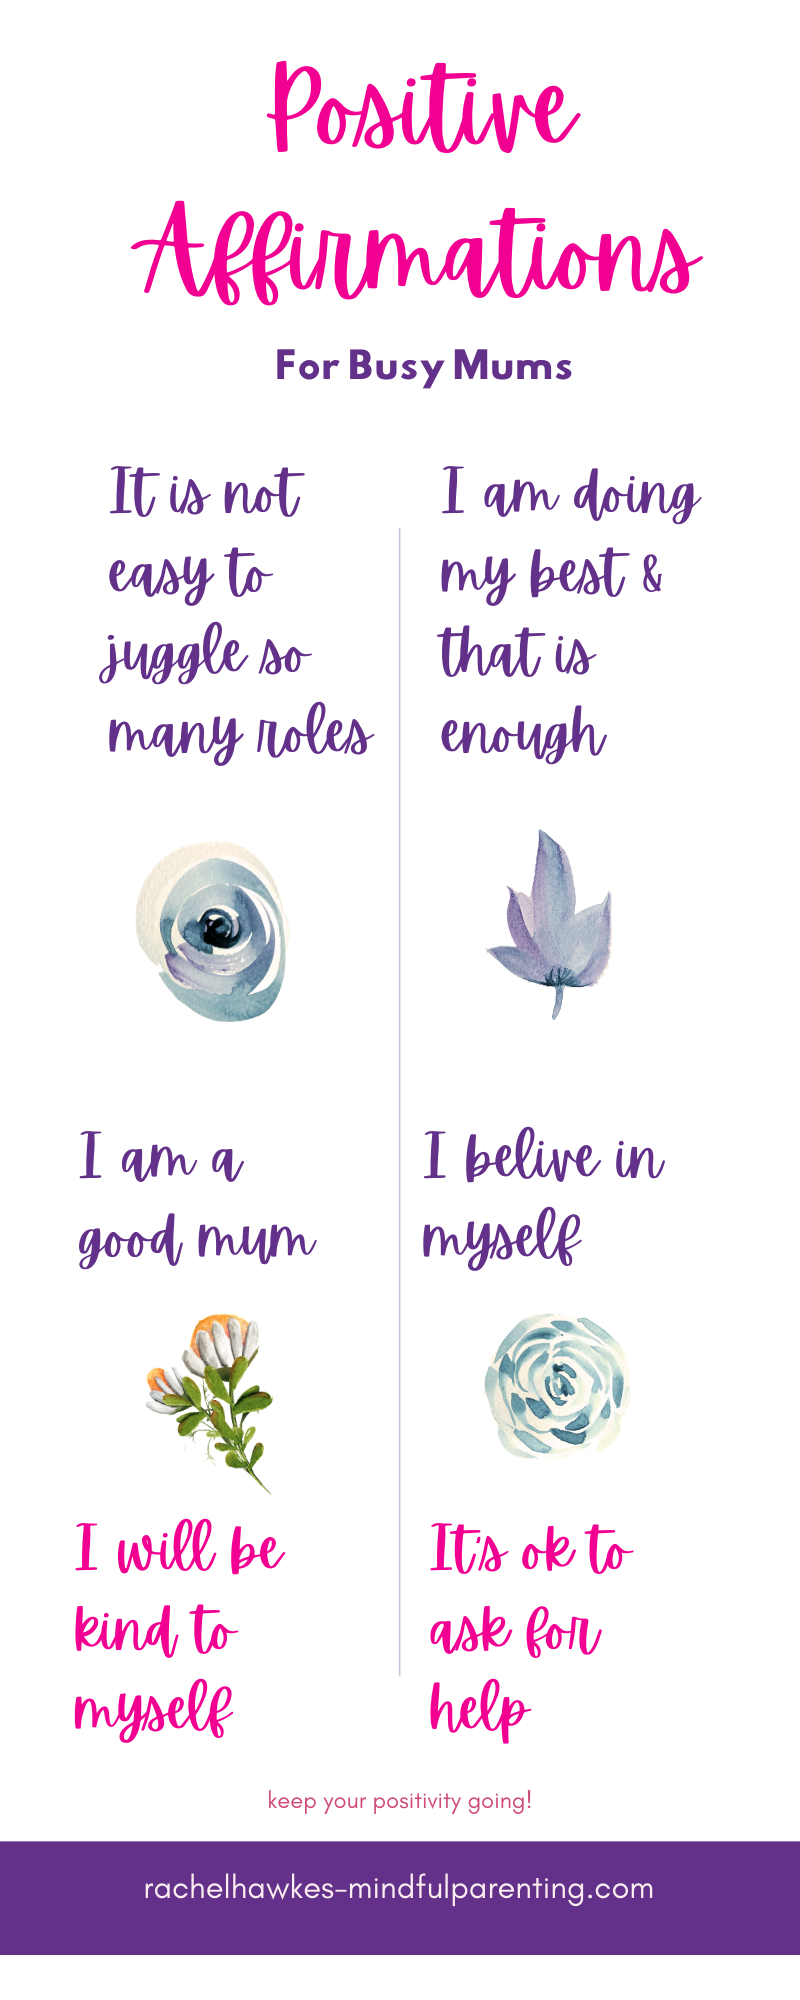 positive affirmations for busy mums info